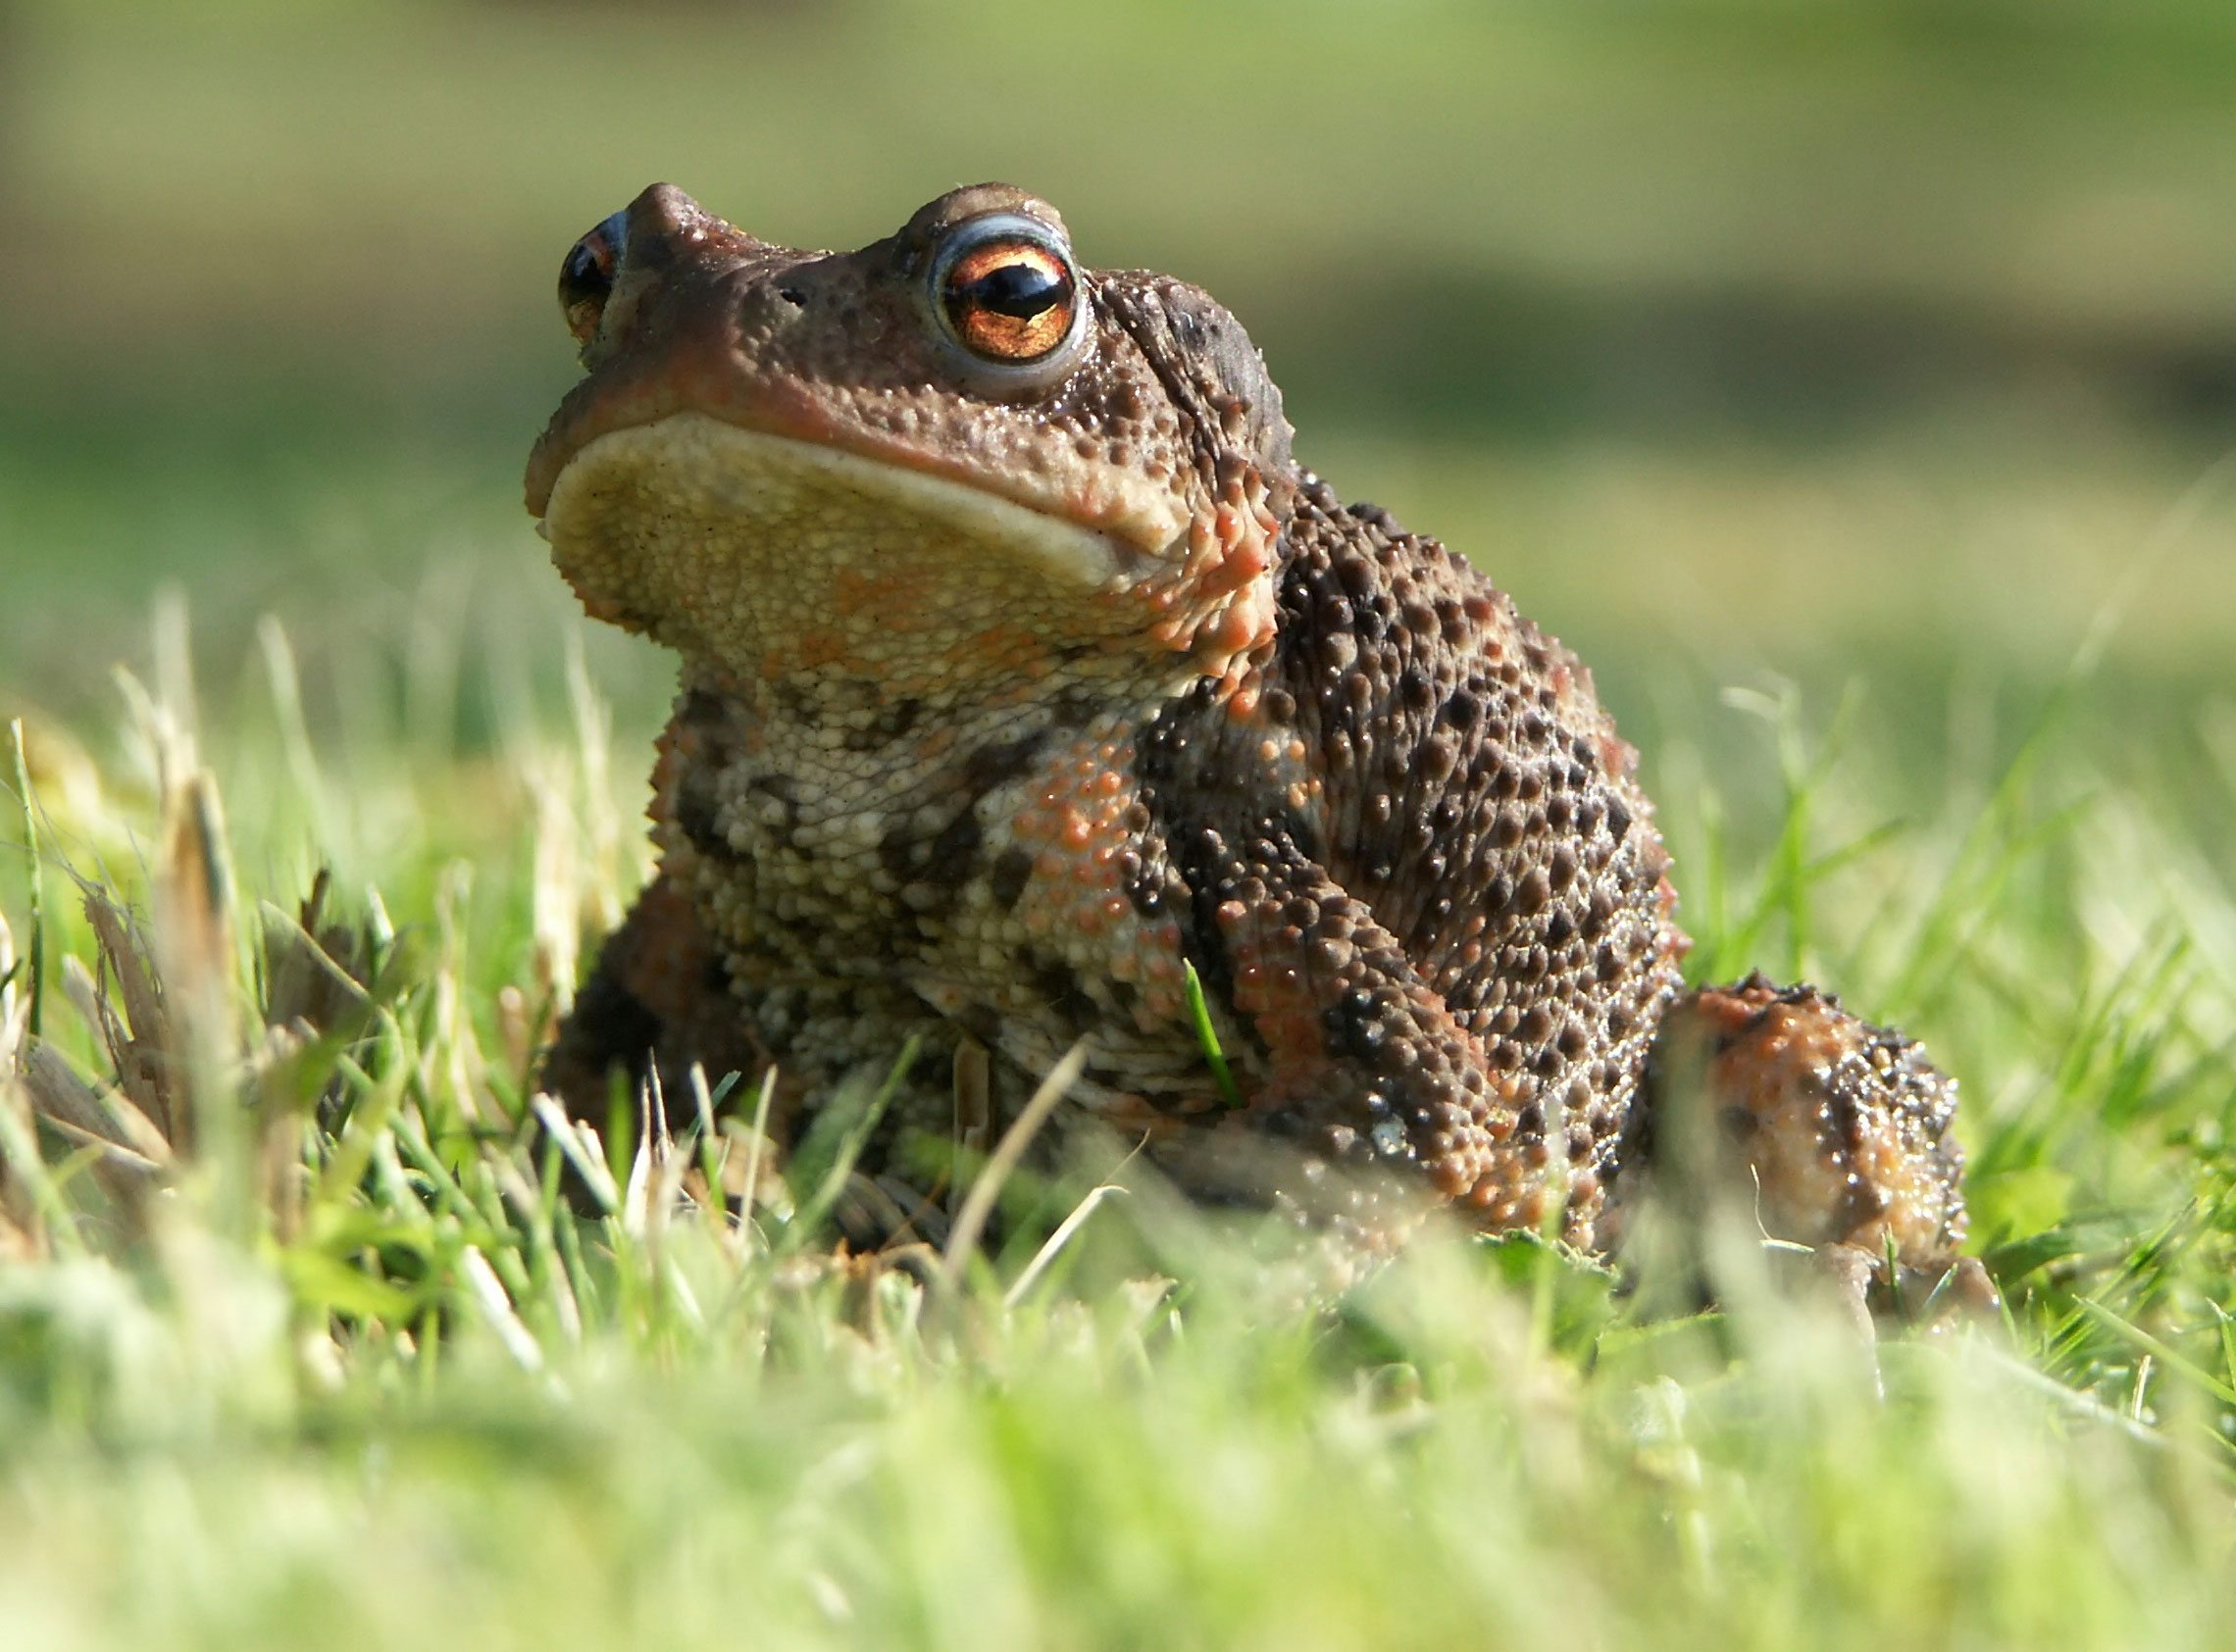 How To Get Rid Of Frogs In Backyard eliminate toads: tips on how to get rid of garden toads